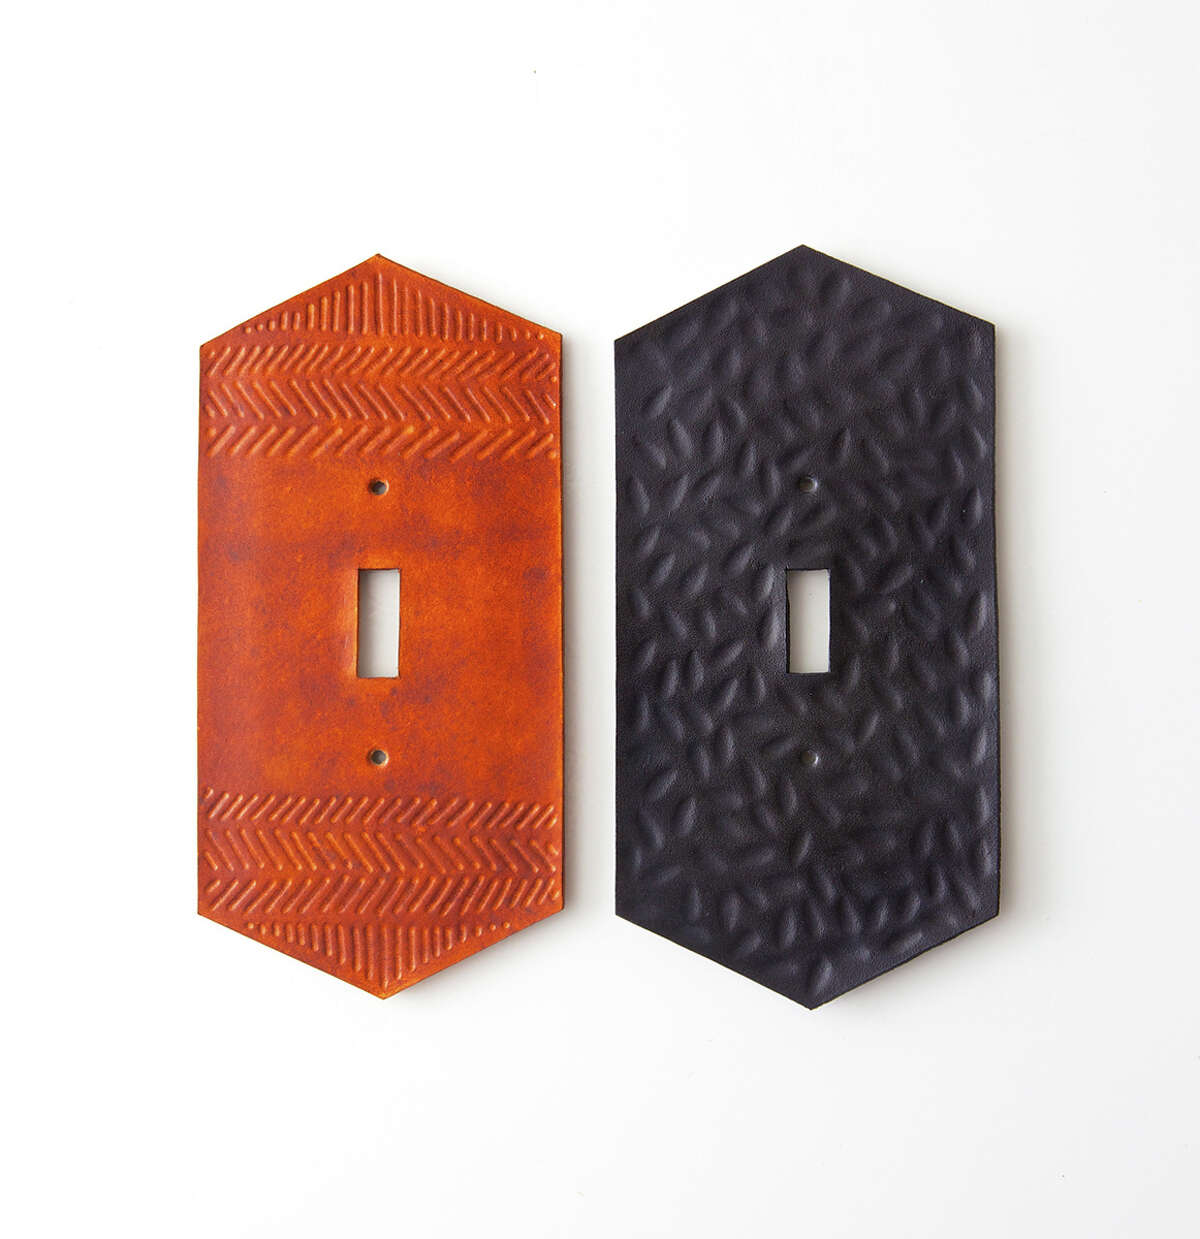 Hand-tooled leather lightswitch plates from Canoe in Austin will be featured at the Lawndale Art Center's Design Fair 2015.